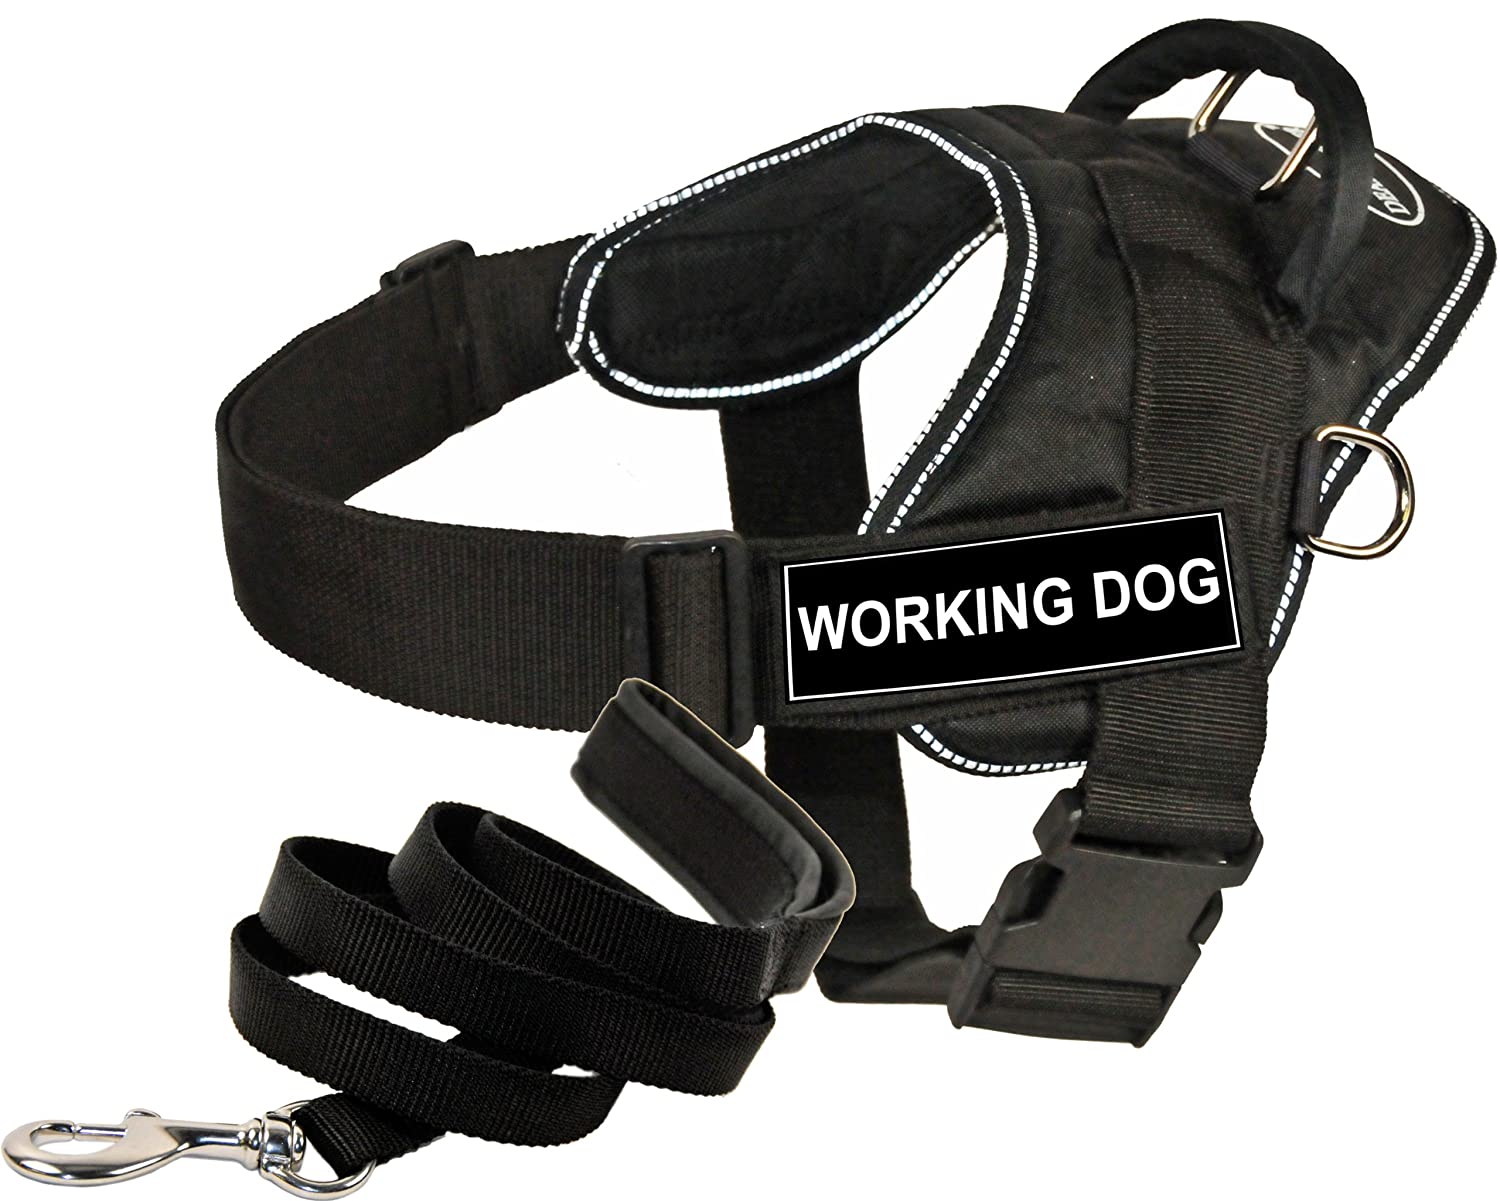 Dean & Tyler DT Fun Works Harness 6-Feet Padded Puppy Leash, Working Dog, Large, Black